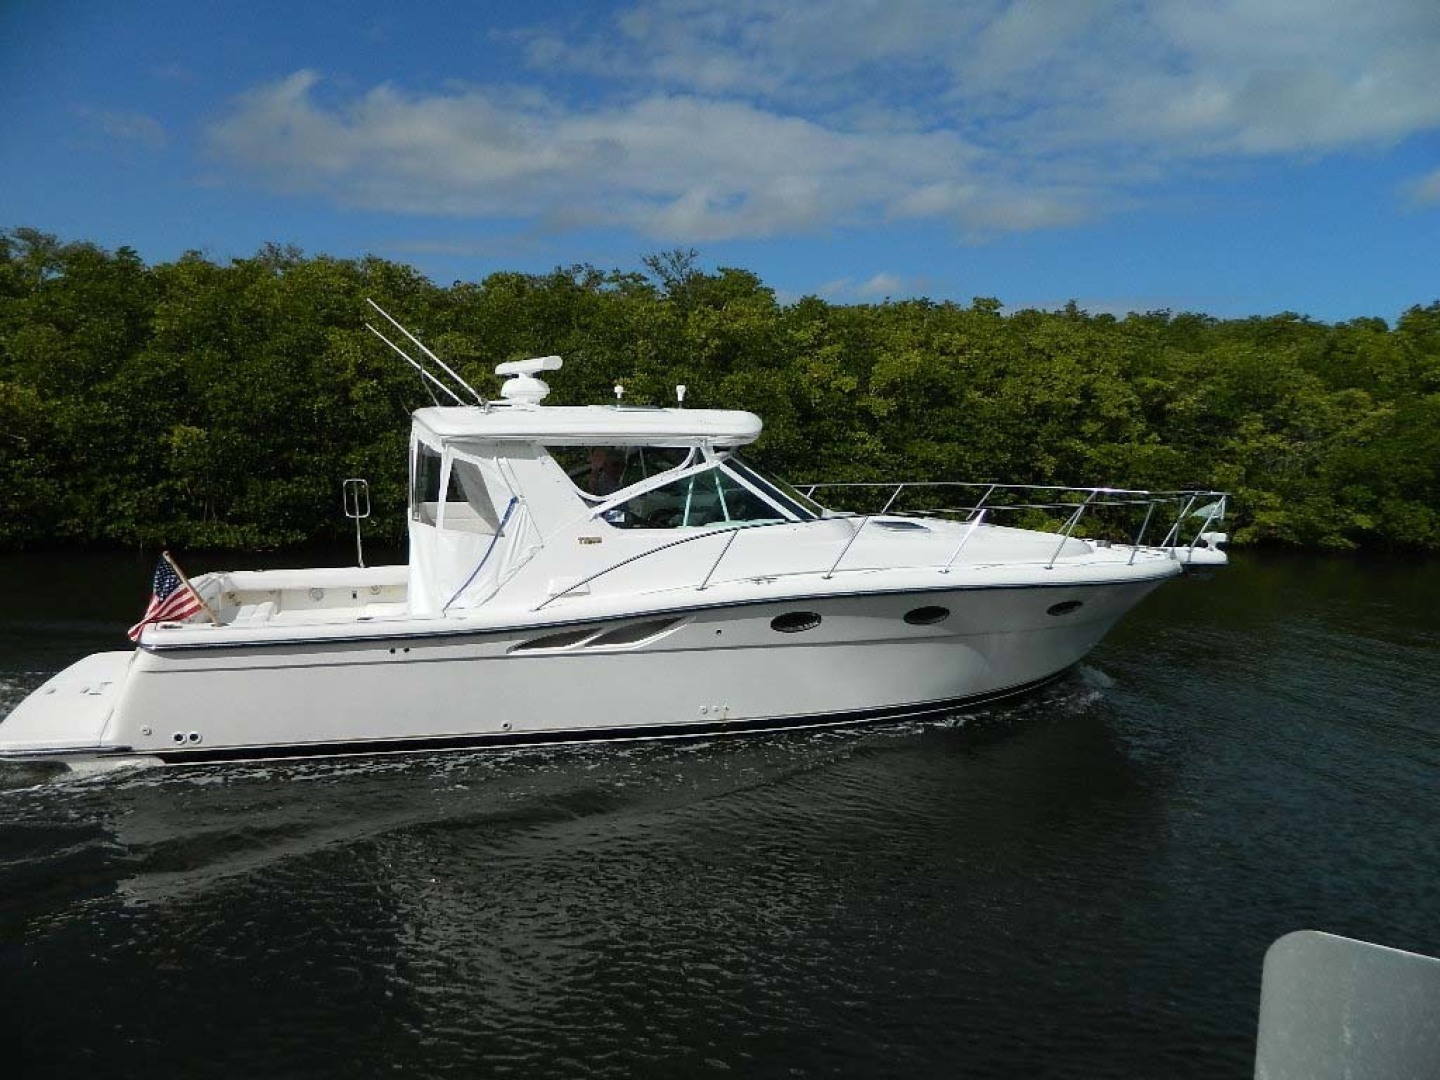 Tiara-Open 2004-Door Knock II Hobe Sound-Florida-United States-Starboard-1315512 | Thumbnail